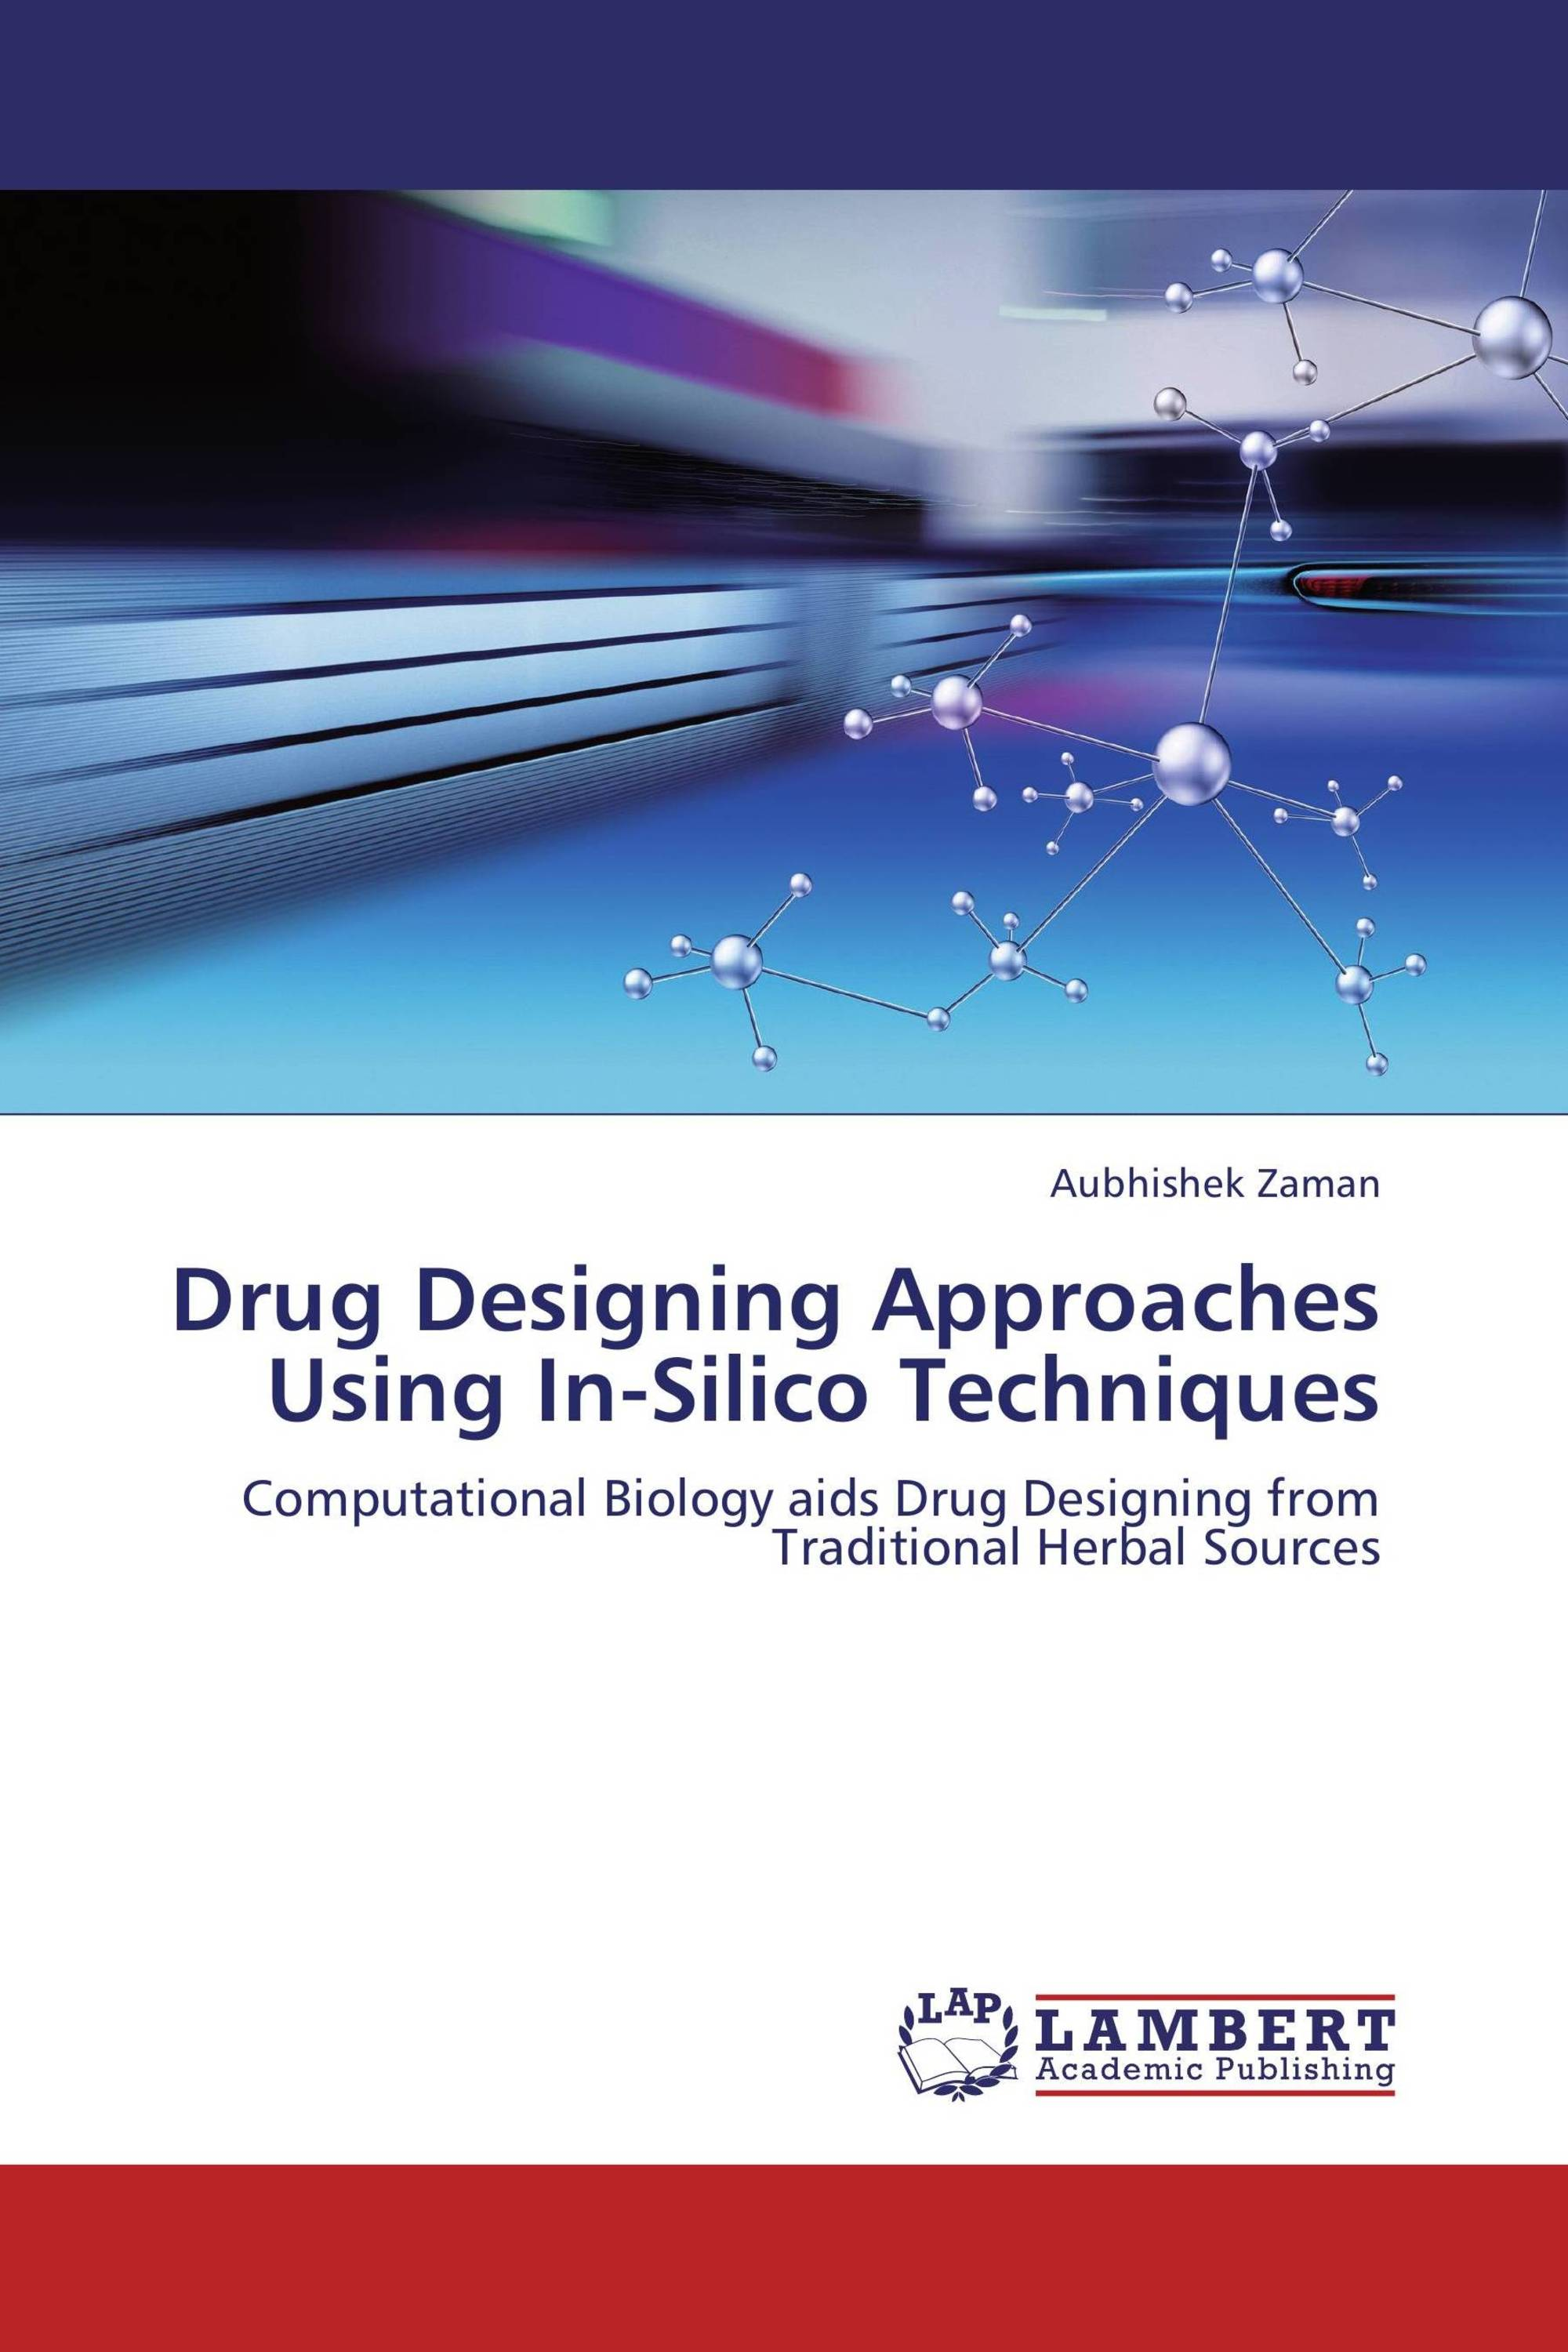 Drug Designing Approaches Using In-Silico Techniques